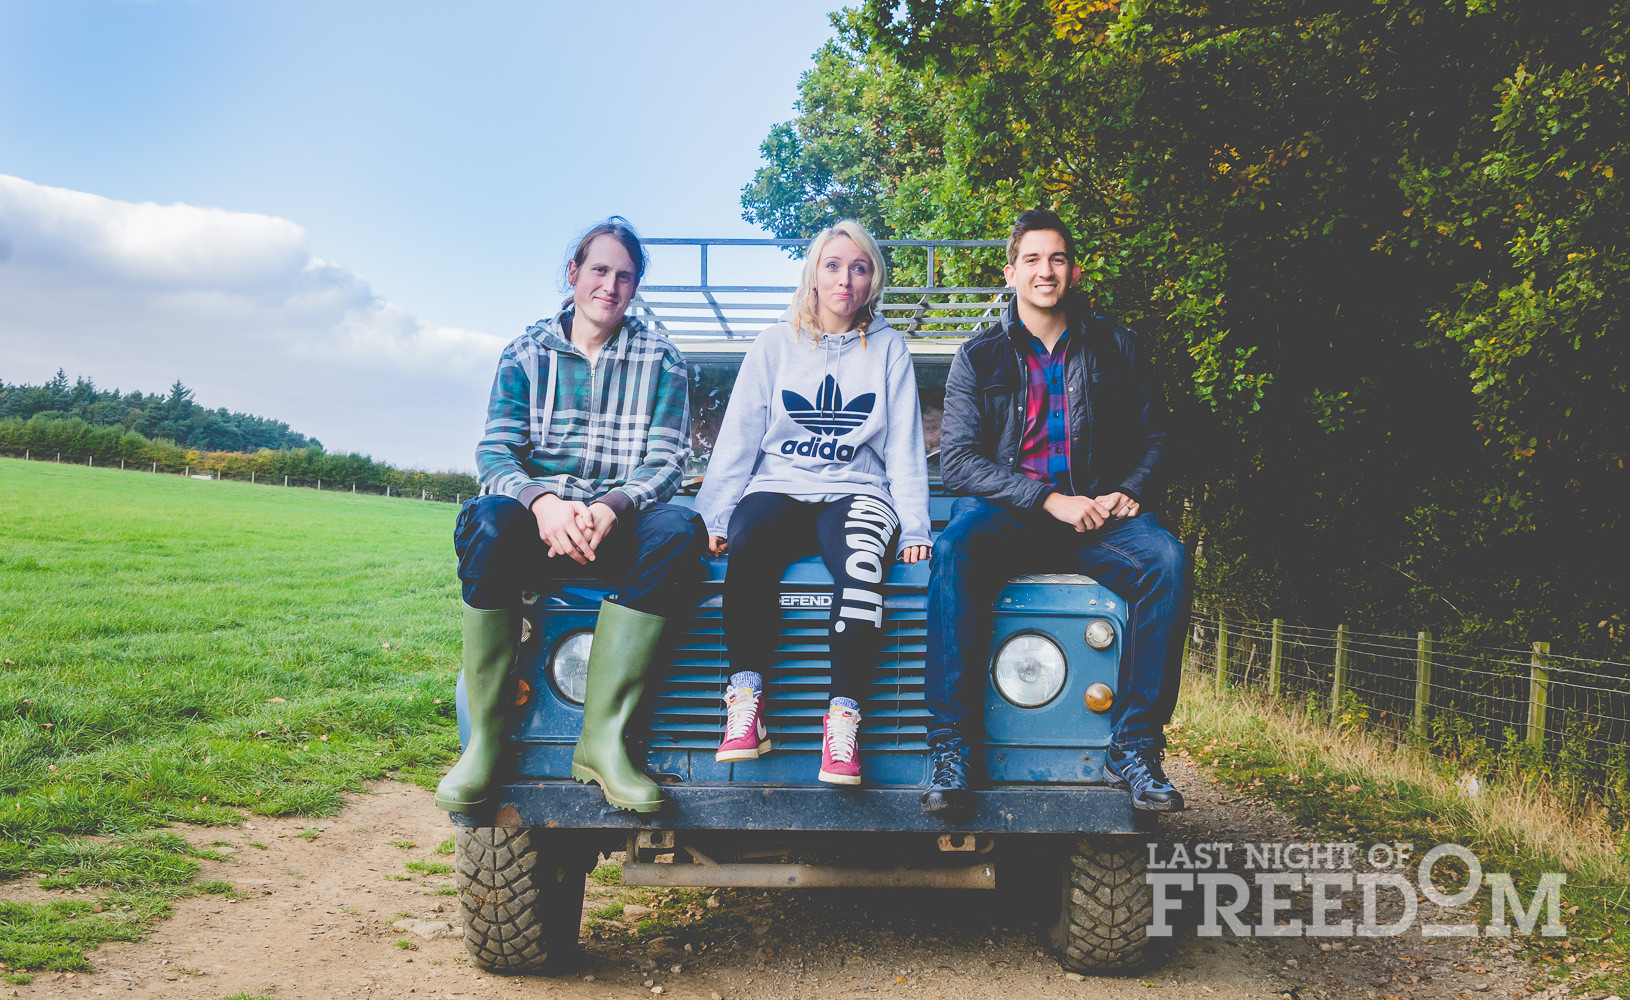 Two boys and a girl sitting on the front of a Jeep